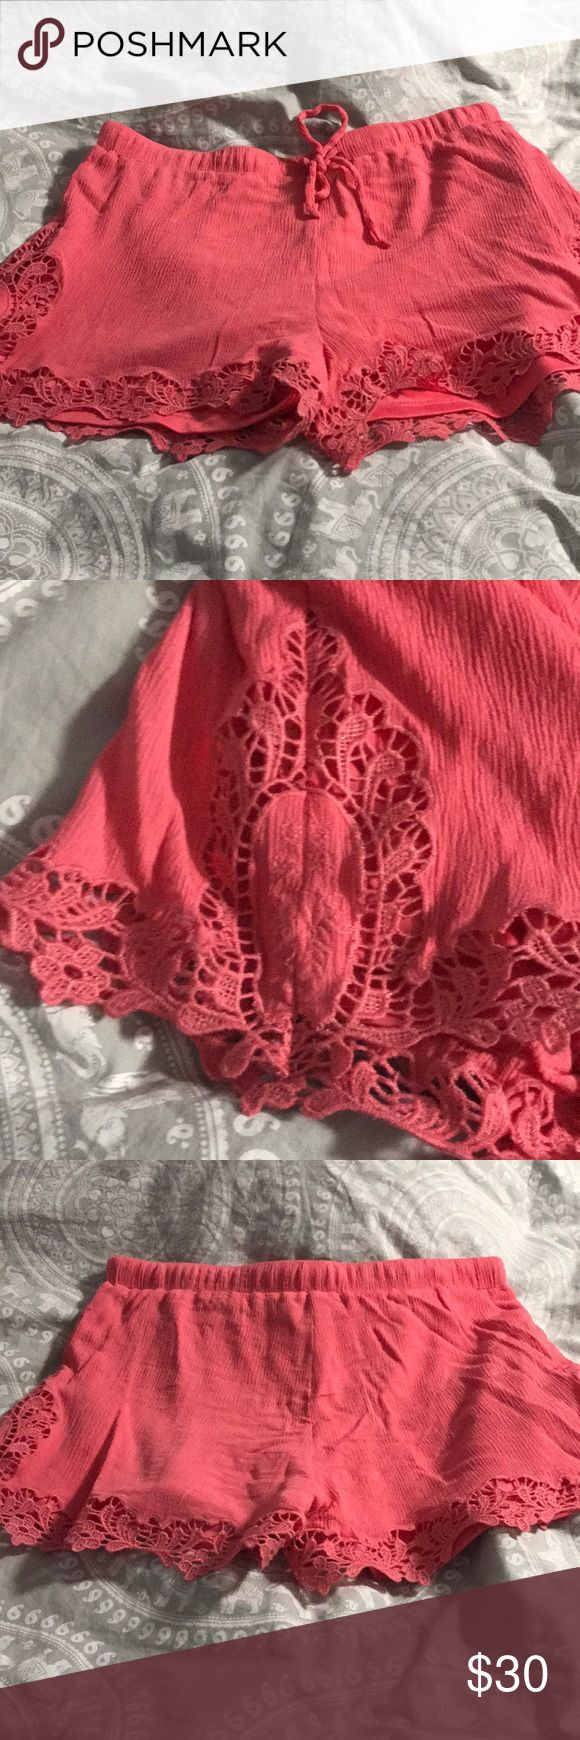 Pink lace shorts Mint julep Boutique rayon shorts. Worn once, these are super light and flowy. For ref I am usually a size 6-8 and these fit perfect Mittoshop Shorts